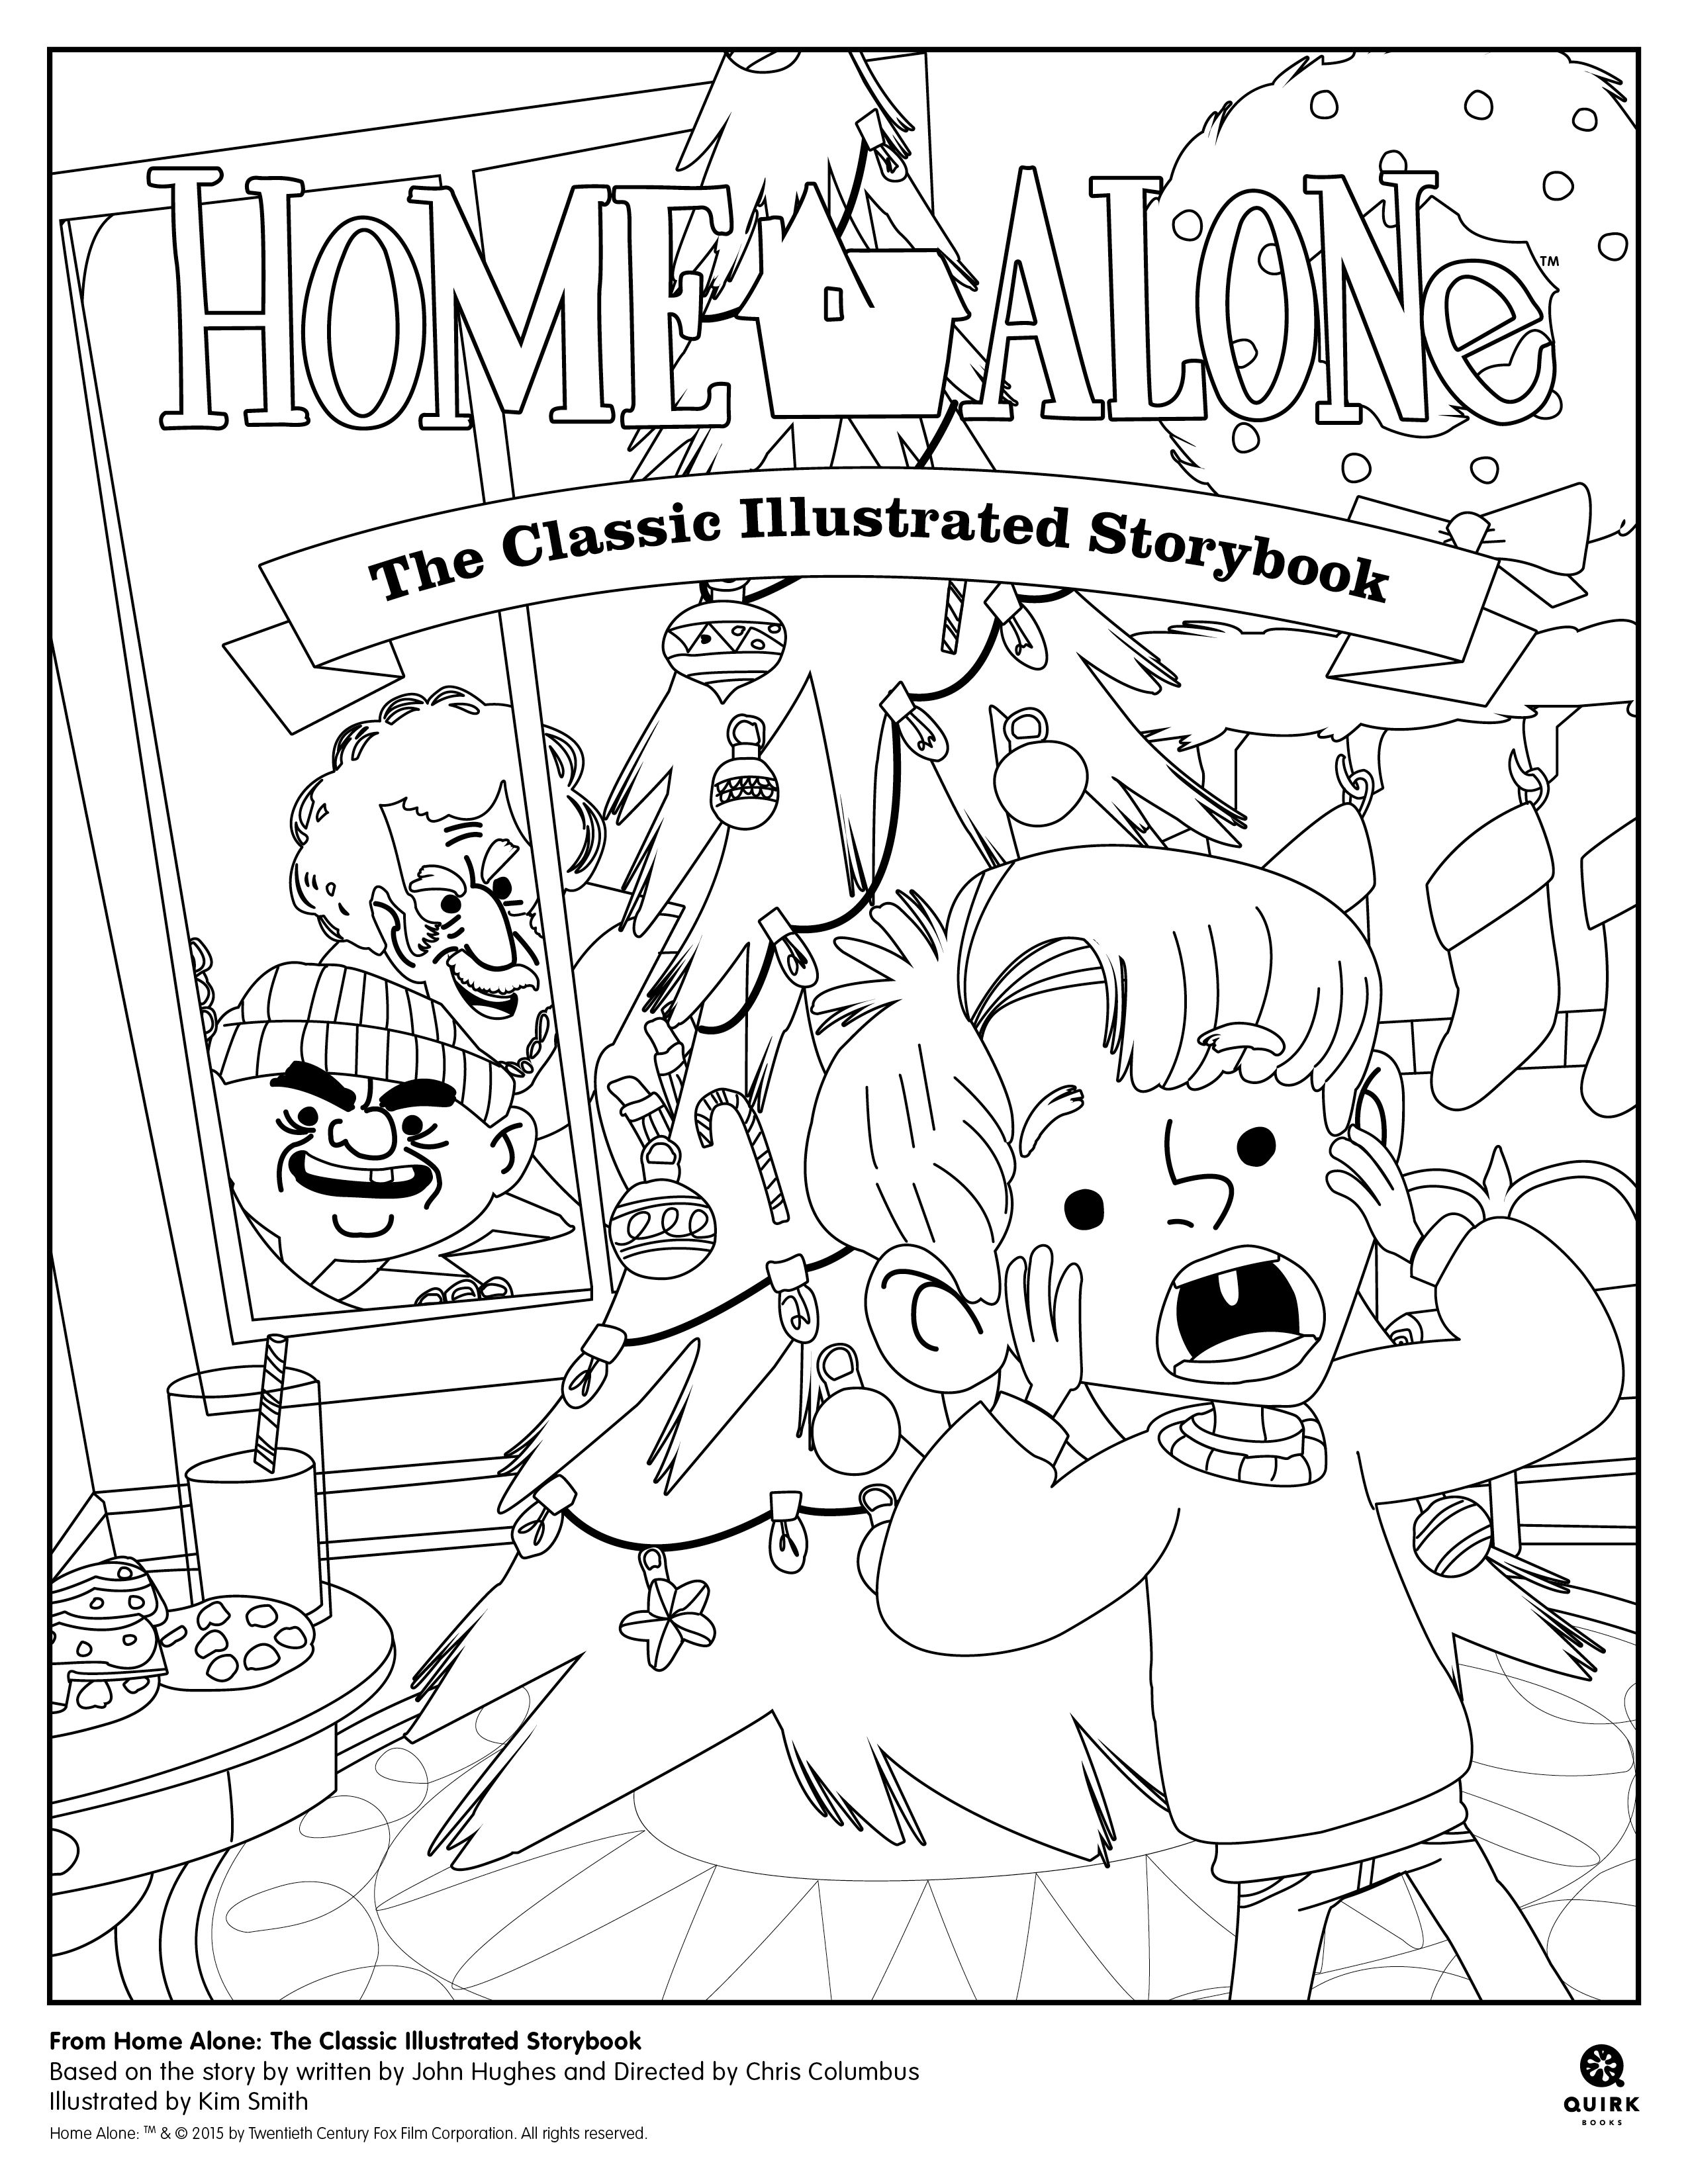 Coloring Page From Home Alone The Classic Illustrated Storybook